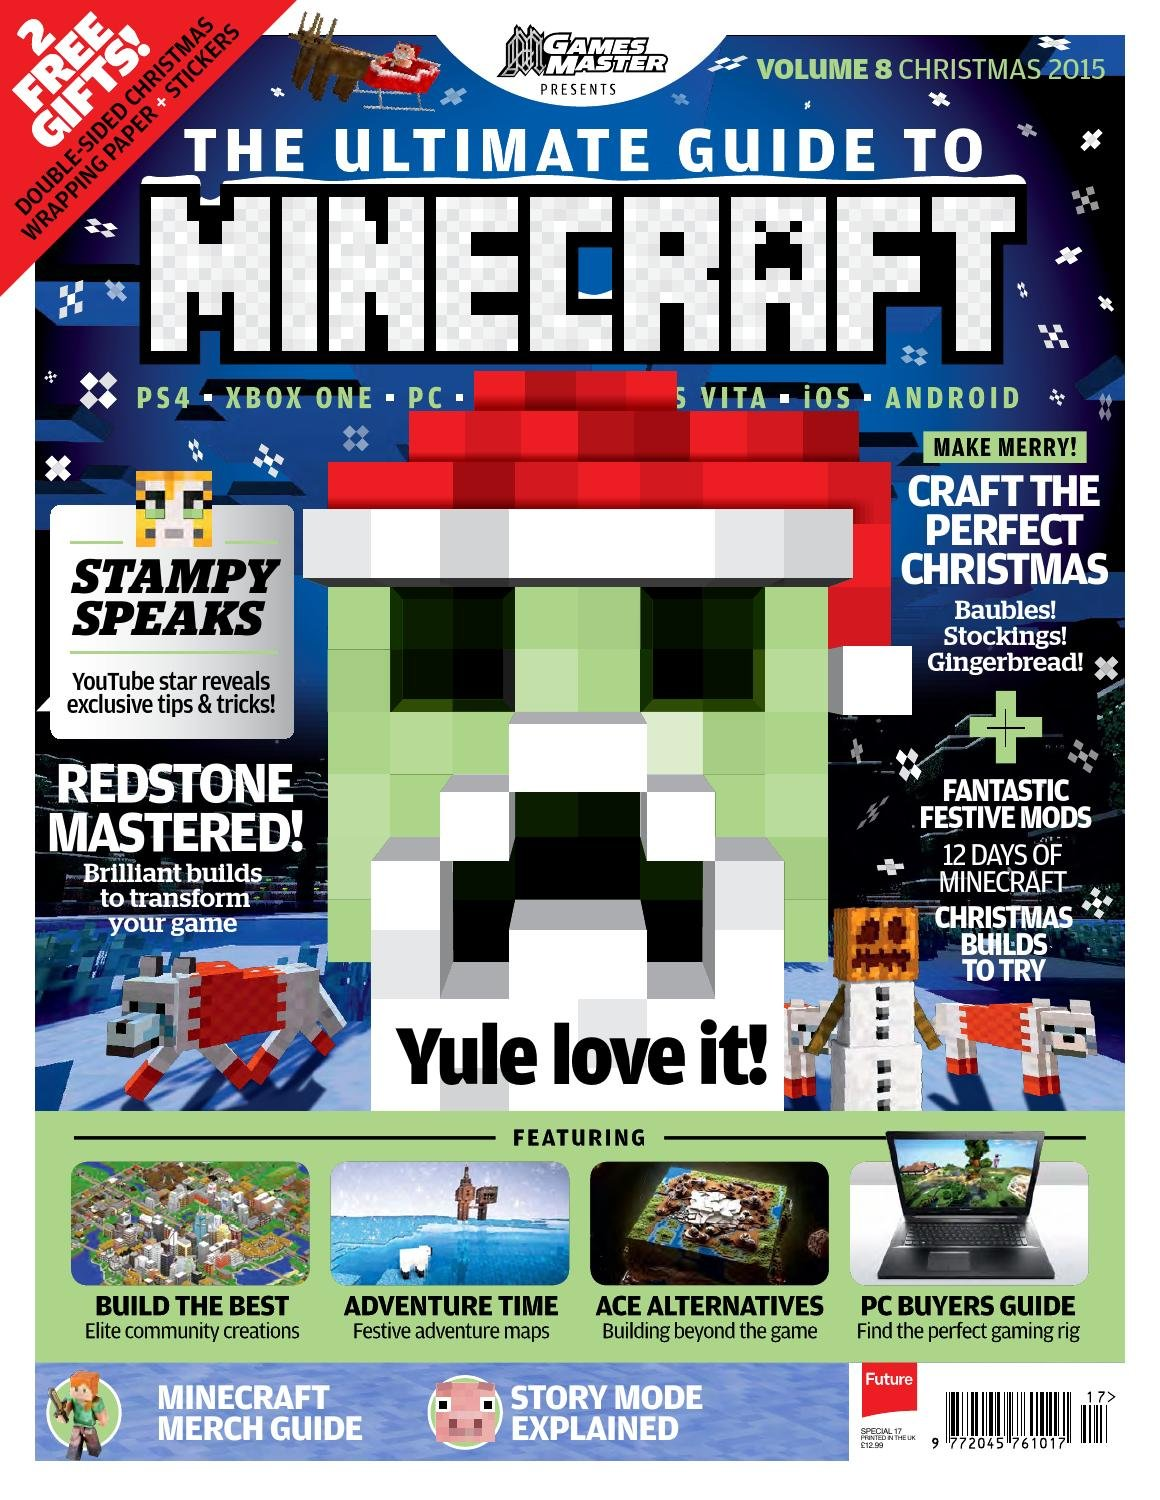 GamesMaster Presents: The Ultimate Guide to Minecraft Vol.08 (Christmas 2015)